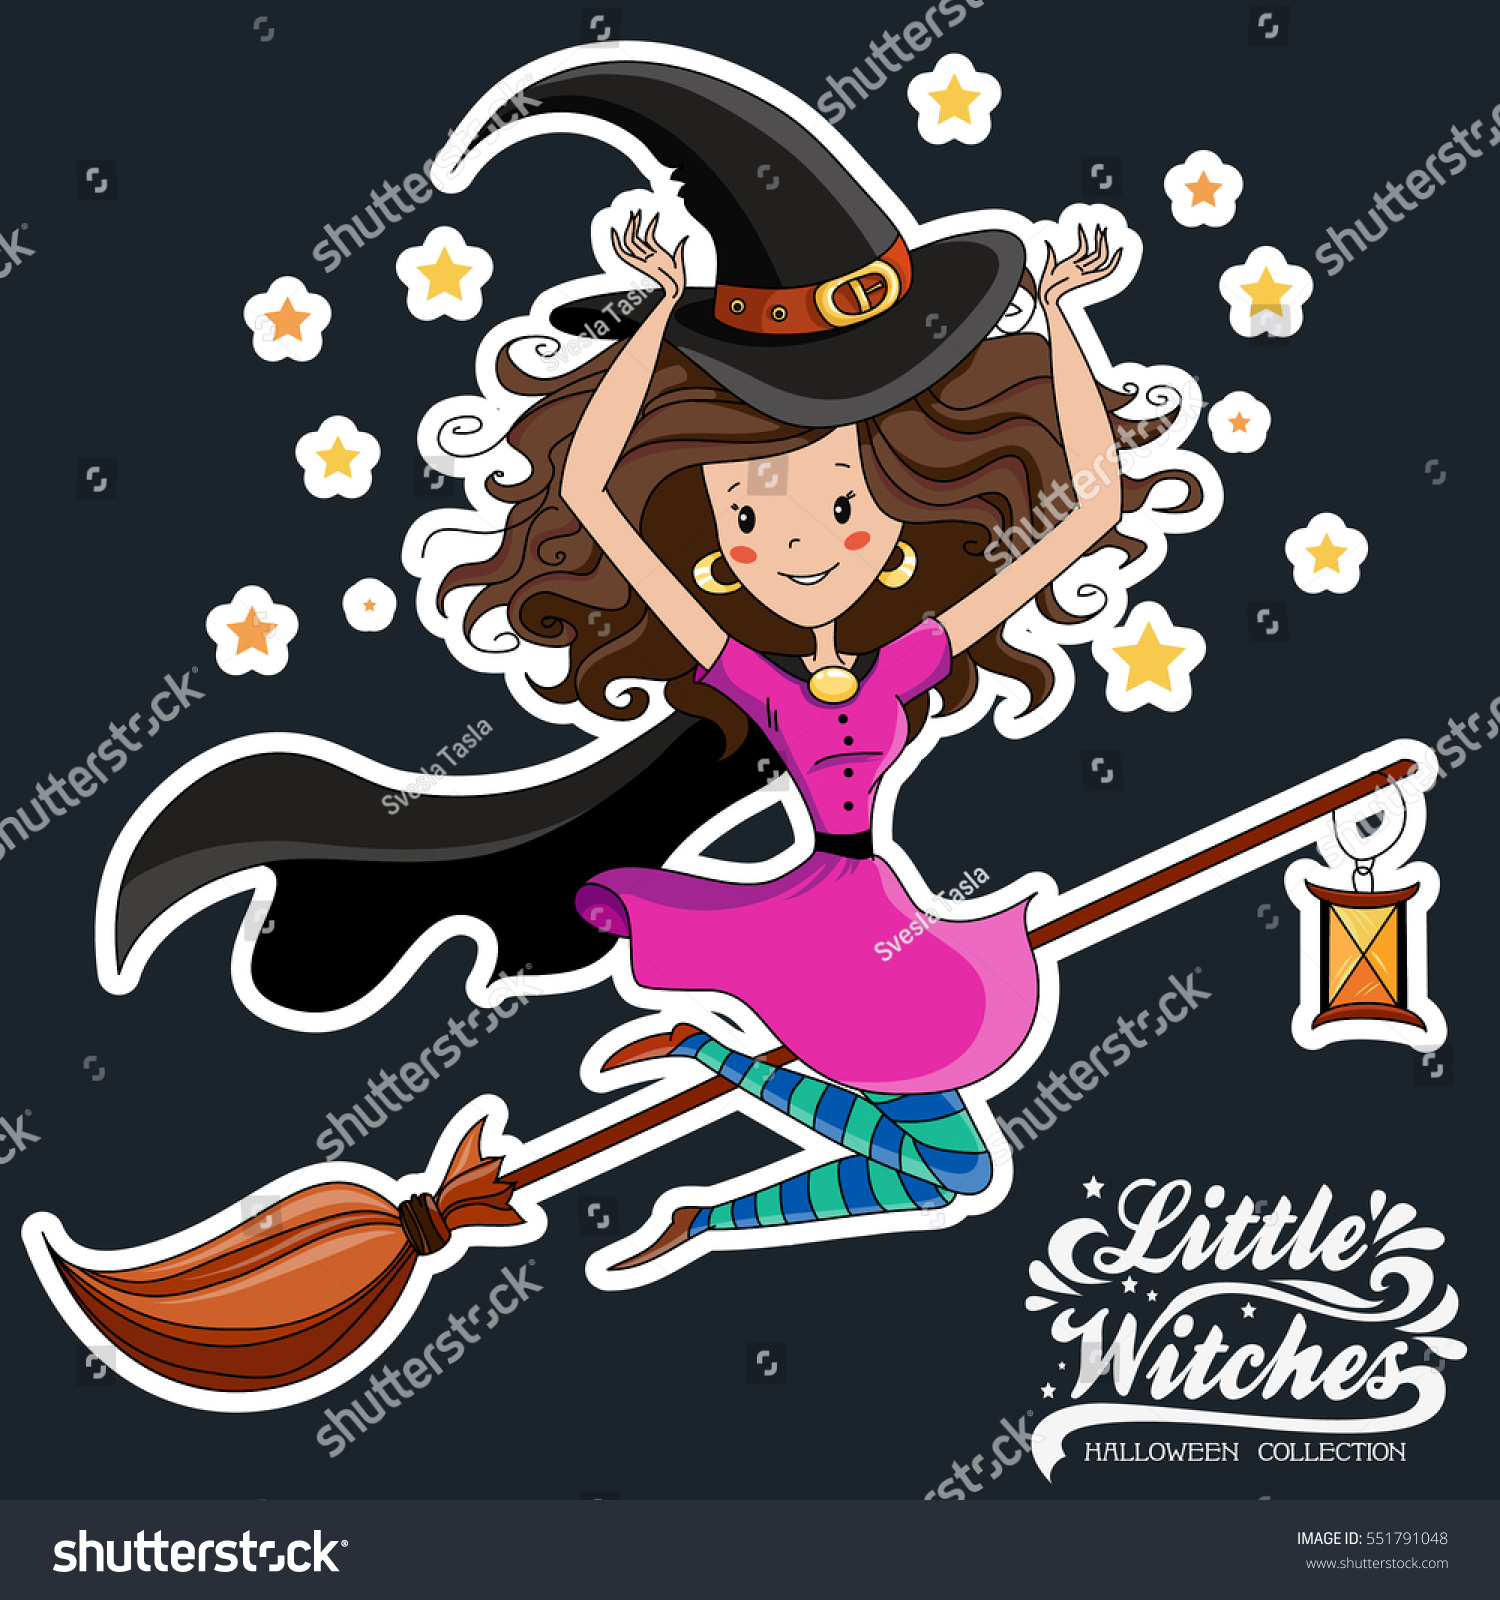 Uncategorized Witch Pictures To Print little witch halloween print on stock vector 551791048 t shirts bags stickers or